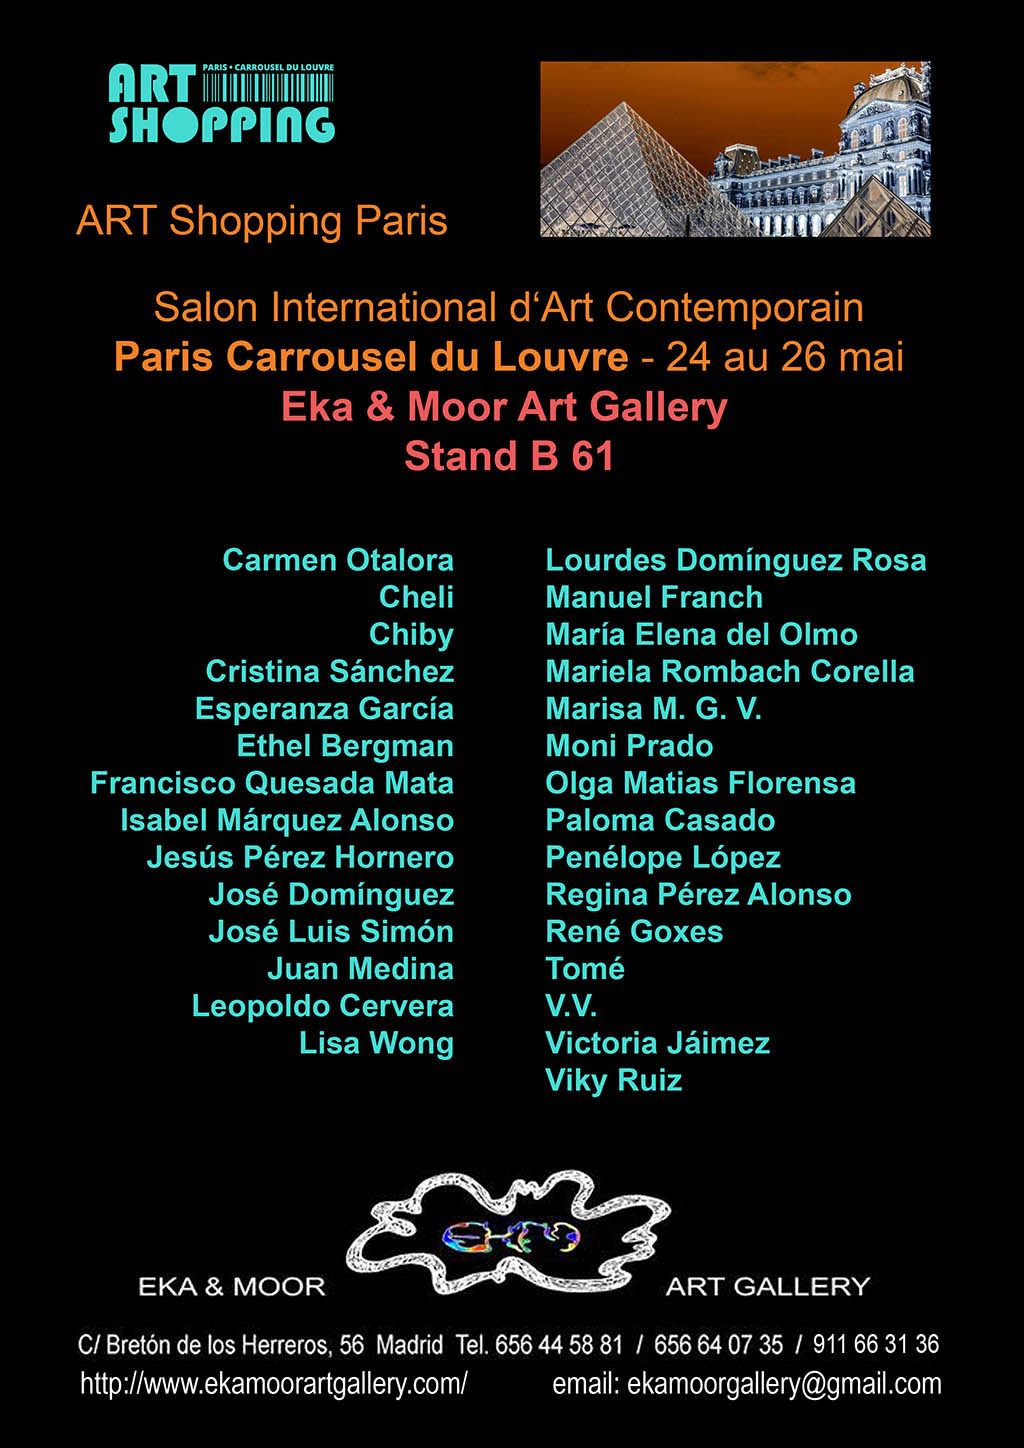 Eka & Moor Art Gallery en el Salon International d'Art Contemporain en el Carrousel du Louvre